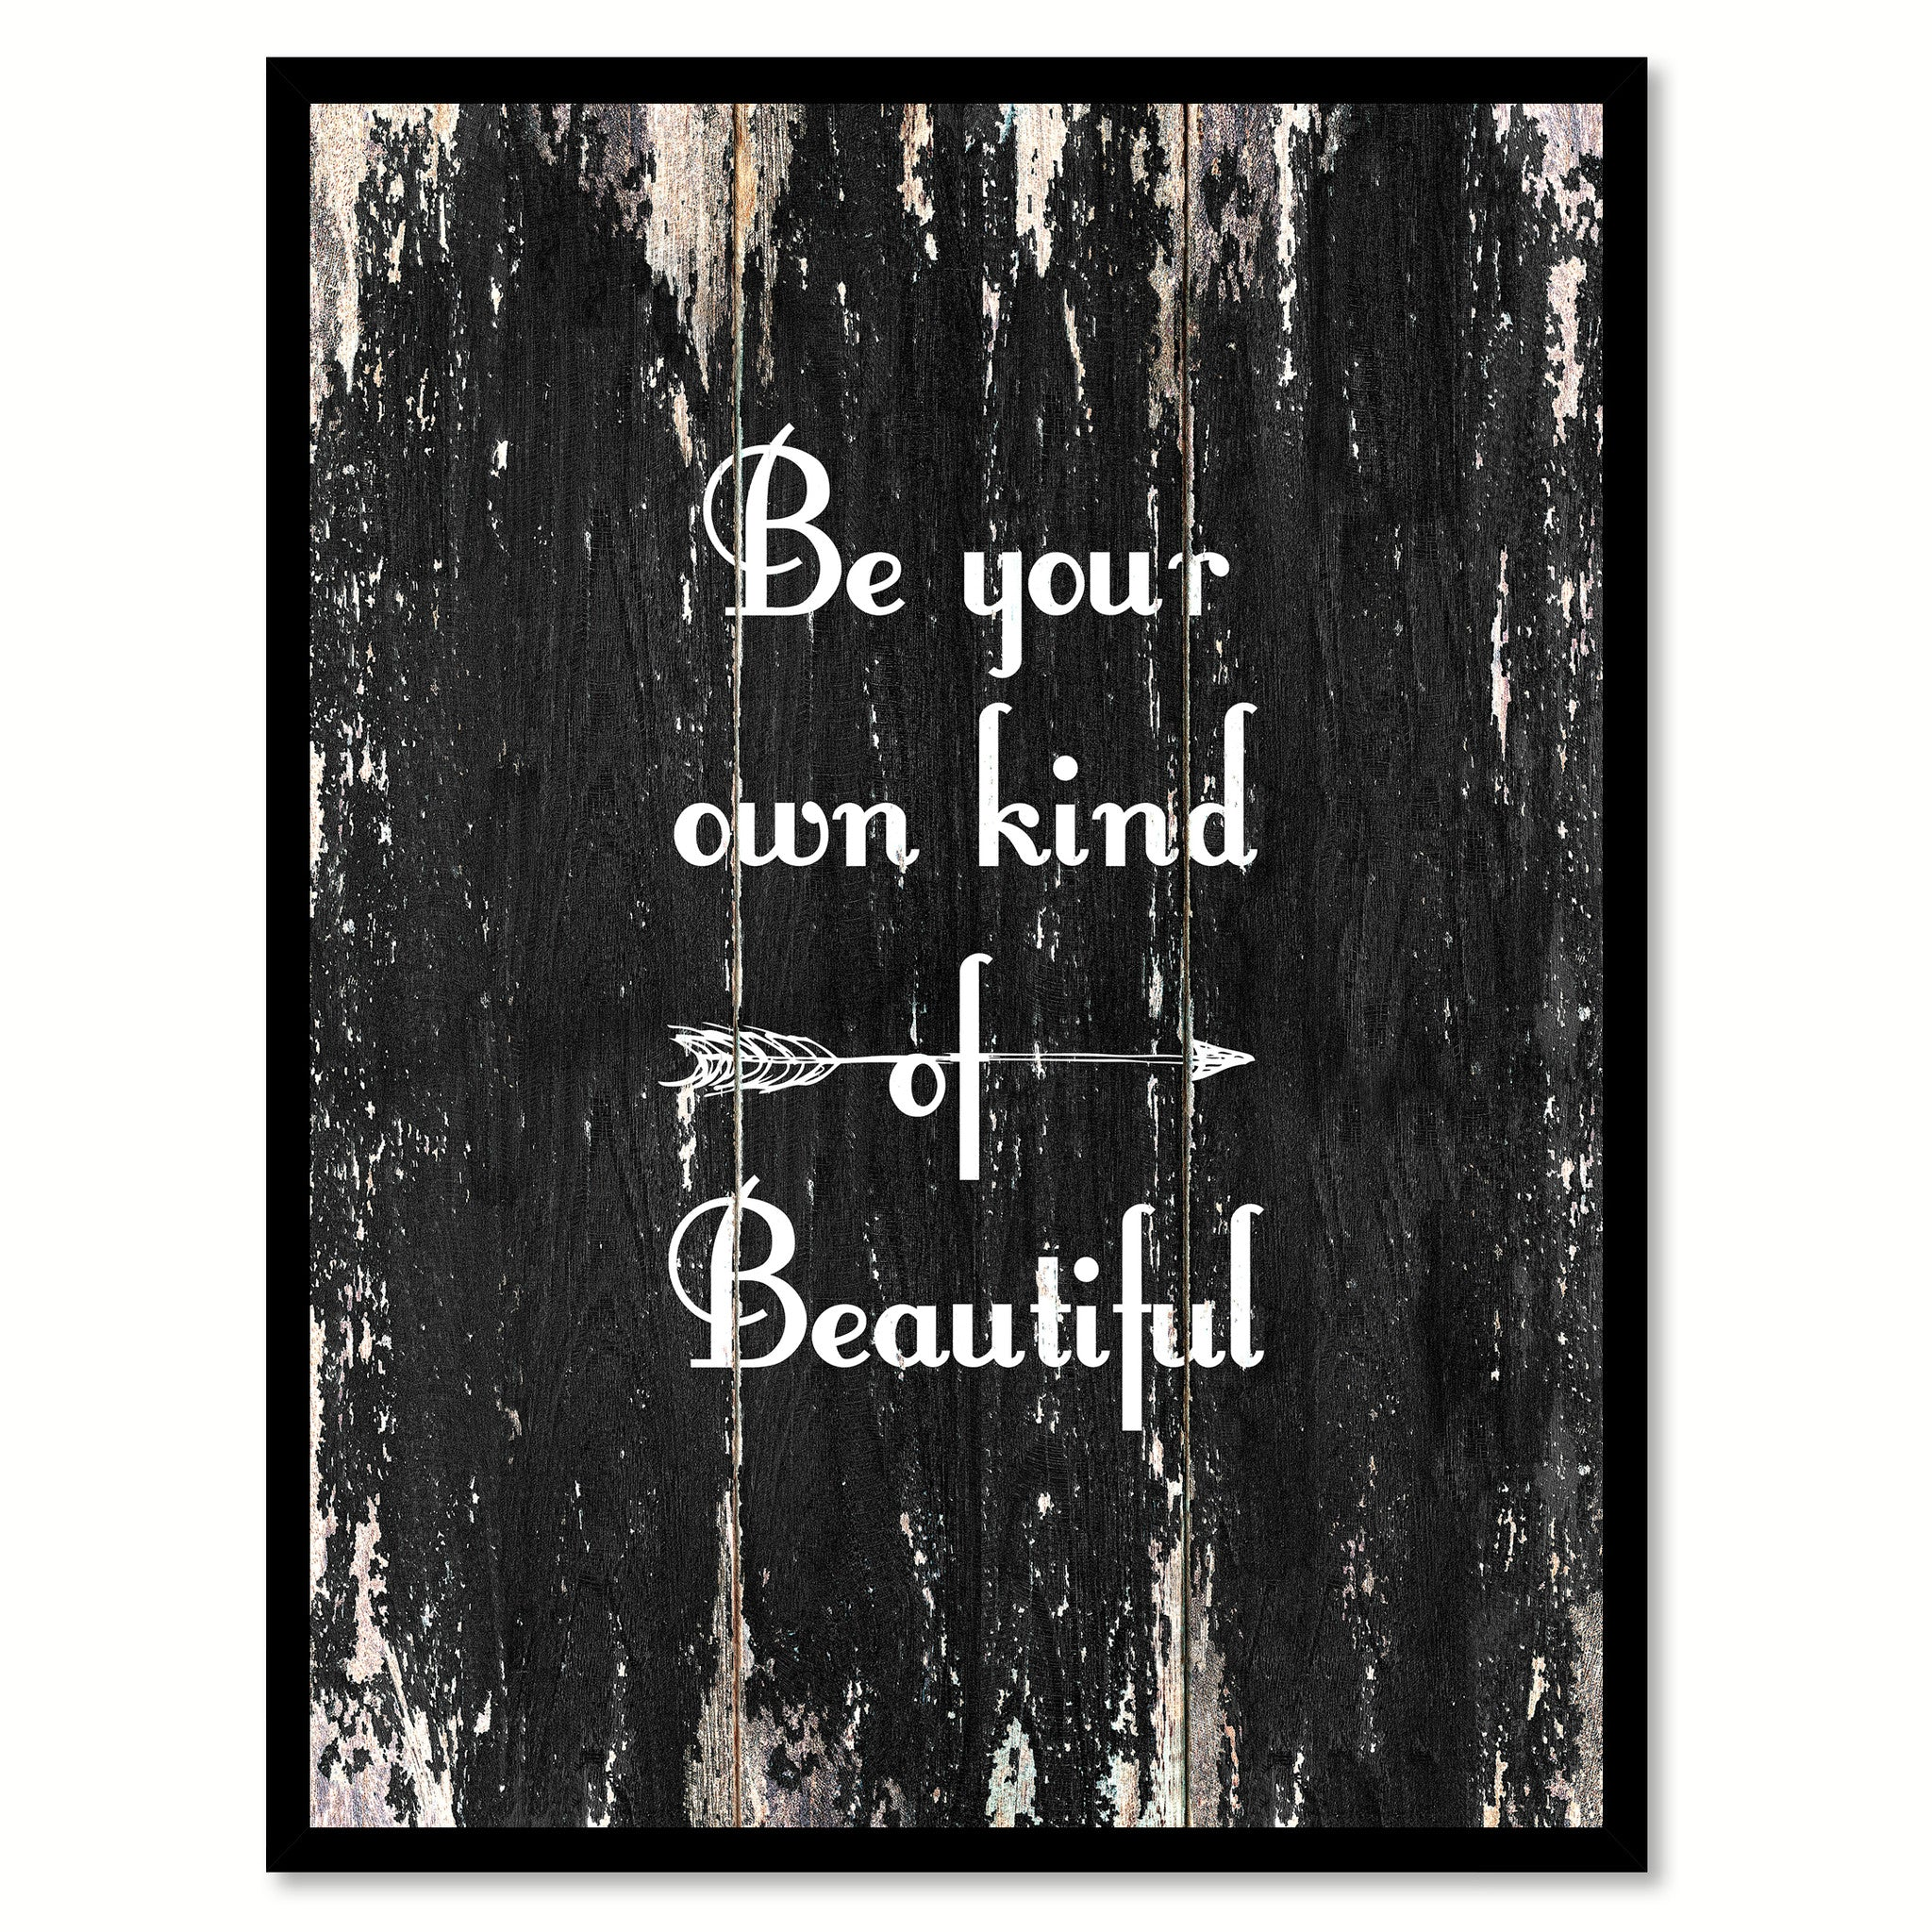 Be your own kind of beautiful 2 Quote Saying Canvas Print with Picture Frame Home Decor Wall Art